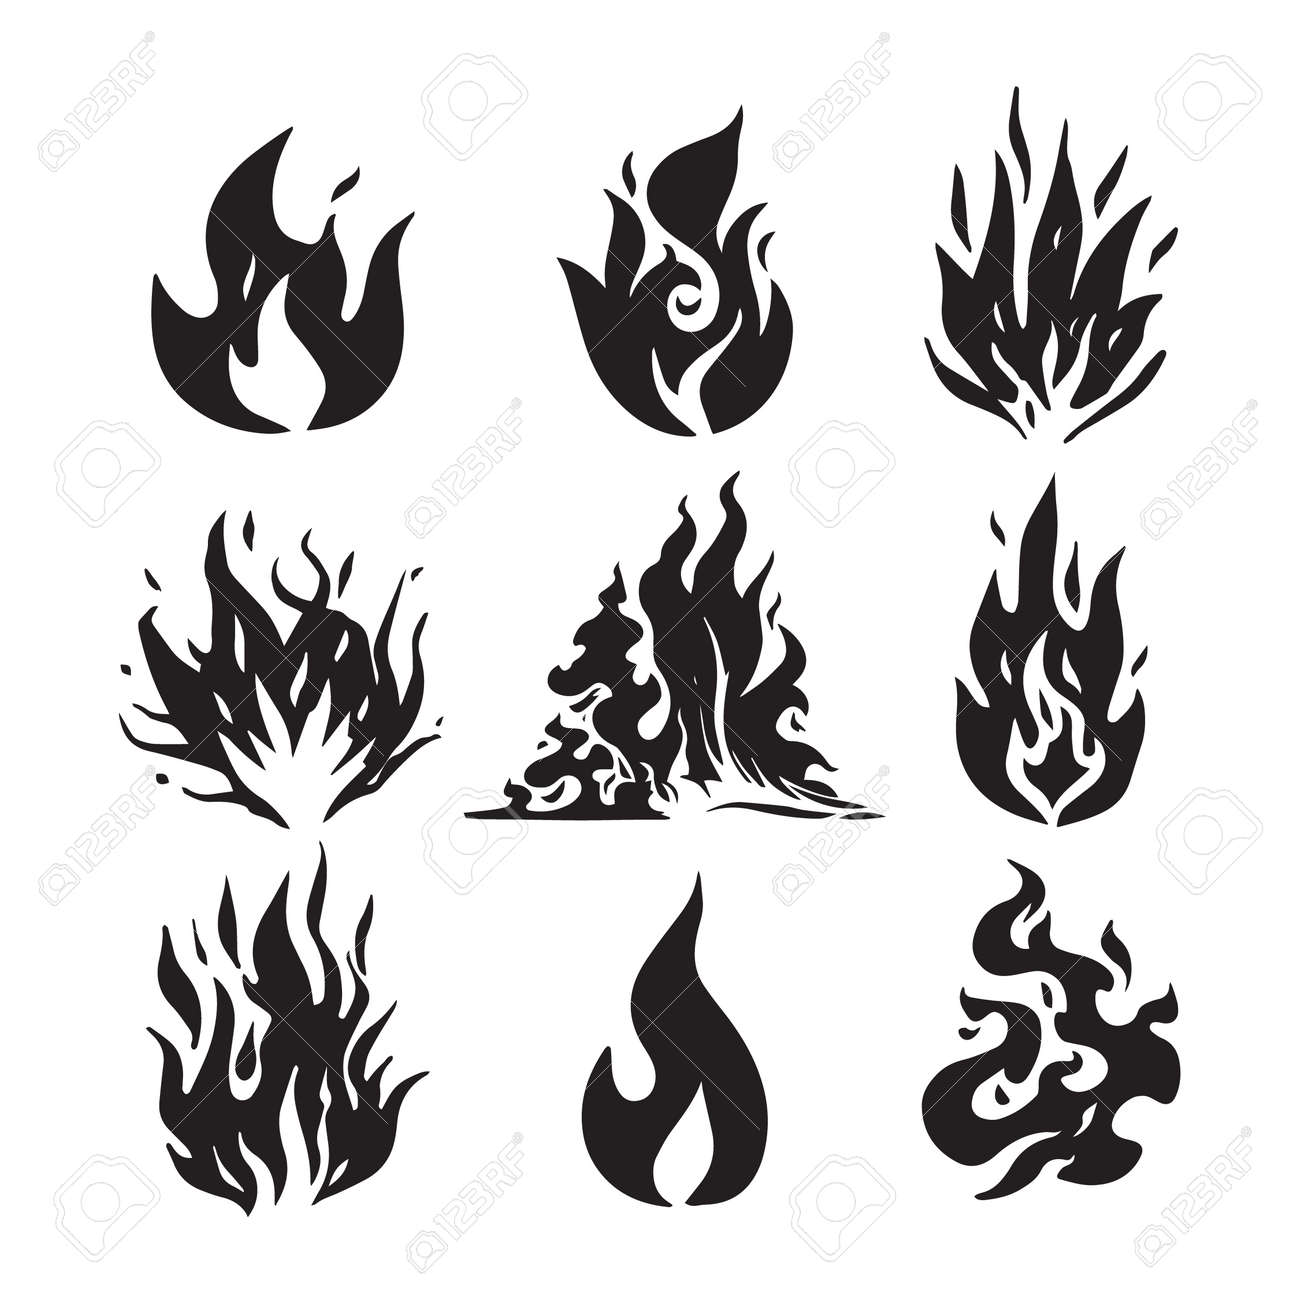 Fire flames, set icons, vector illustration. Hand drawn sketch fire flame. - 149995572